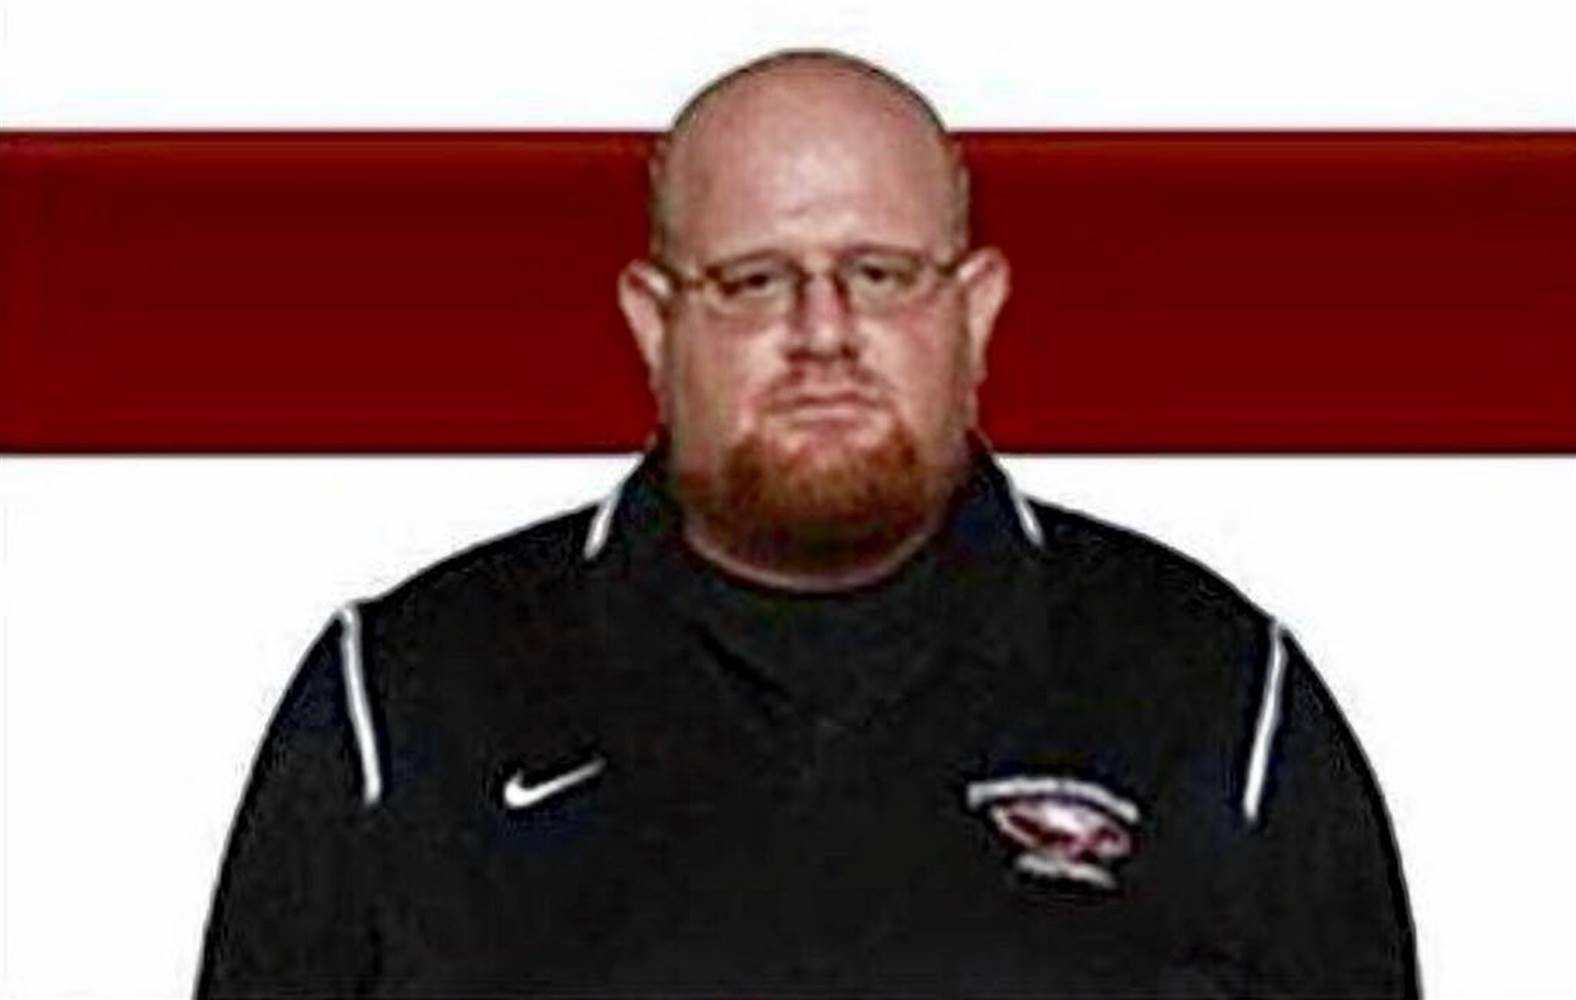 Football coach 'died a hero' protecting students during Florida shooting